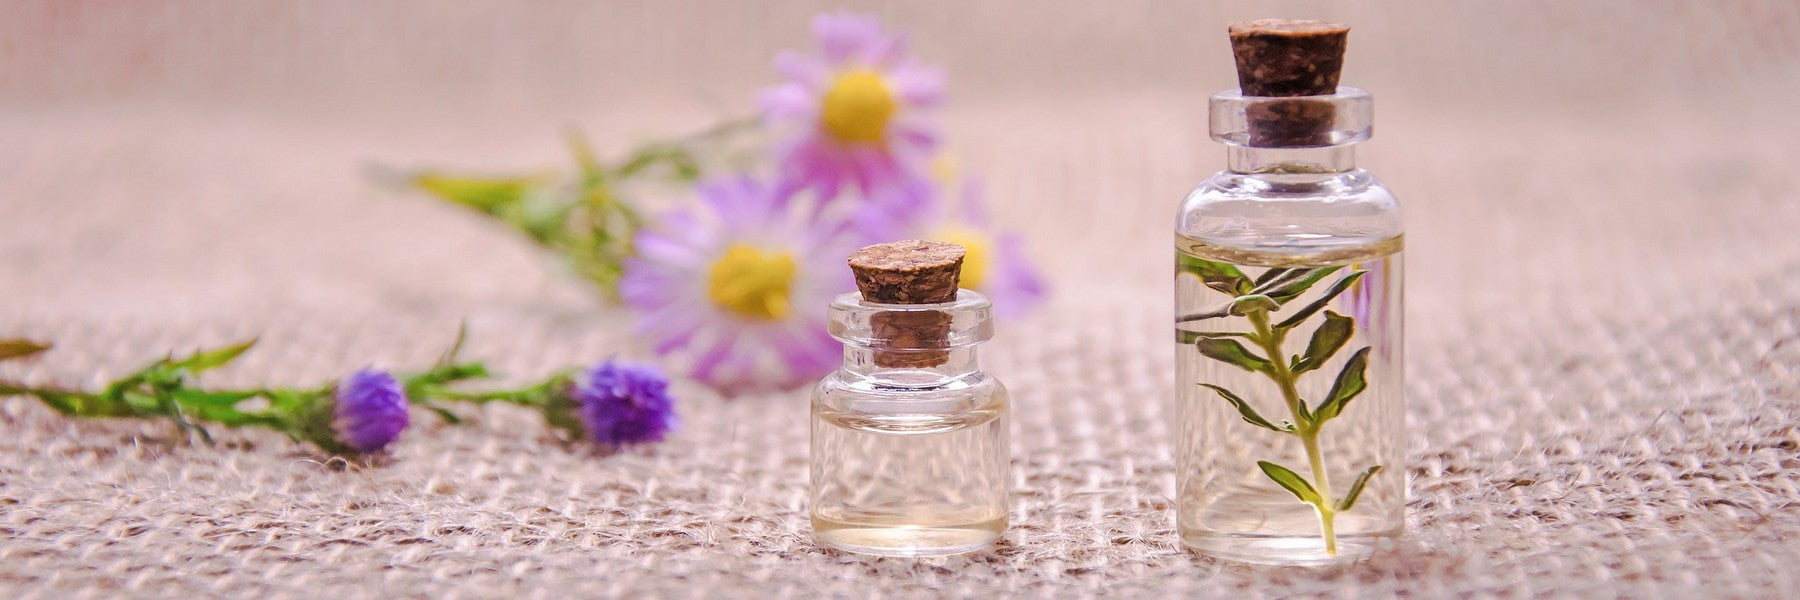 Understanding the difference between organic skin care and natural skin care products